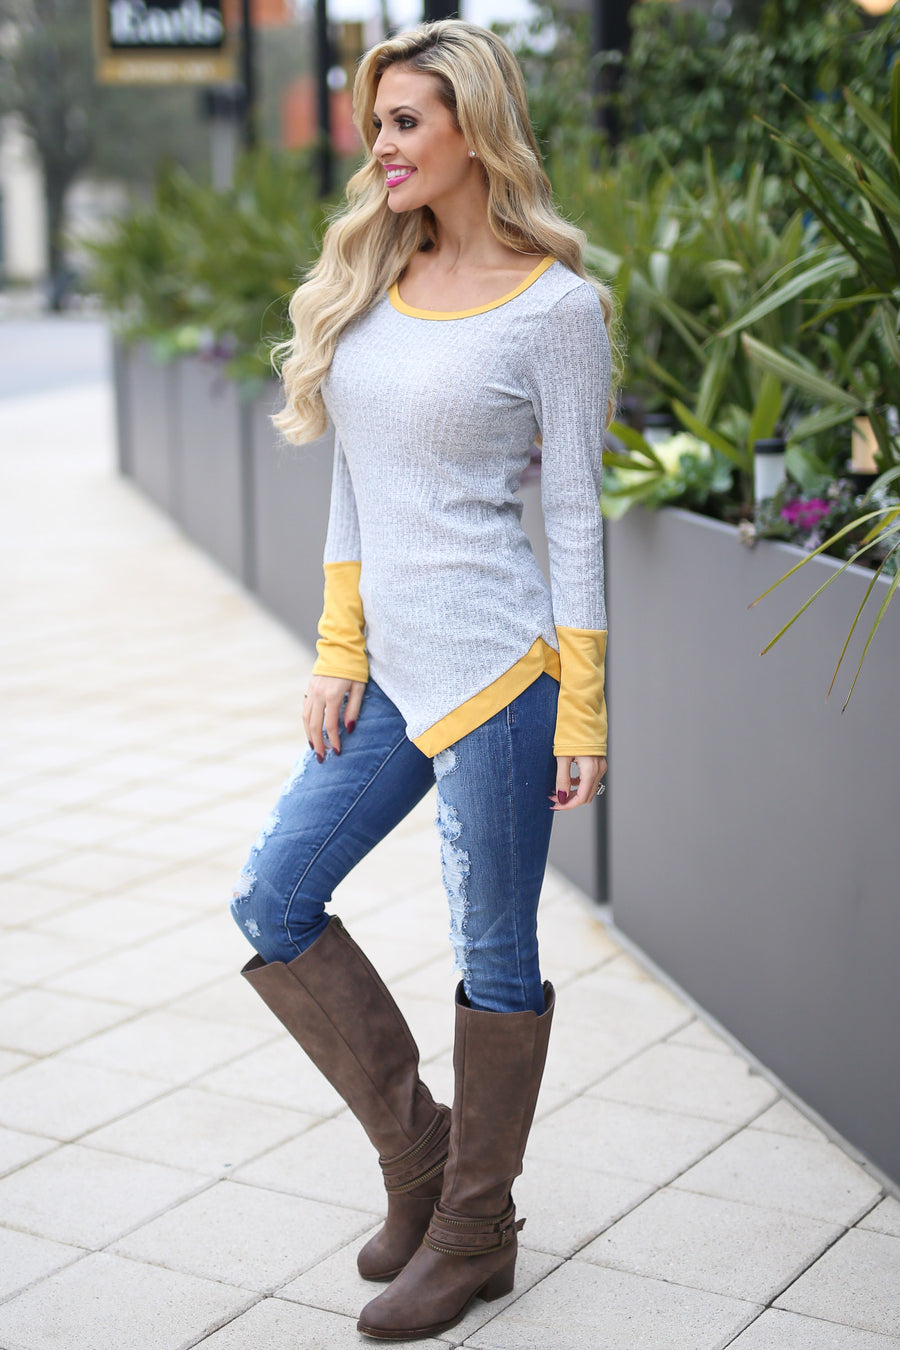 Sunny Destinations Top - Heather Grey/Mustard long sleeve contrast trim top, front, Closet Candy Boutique